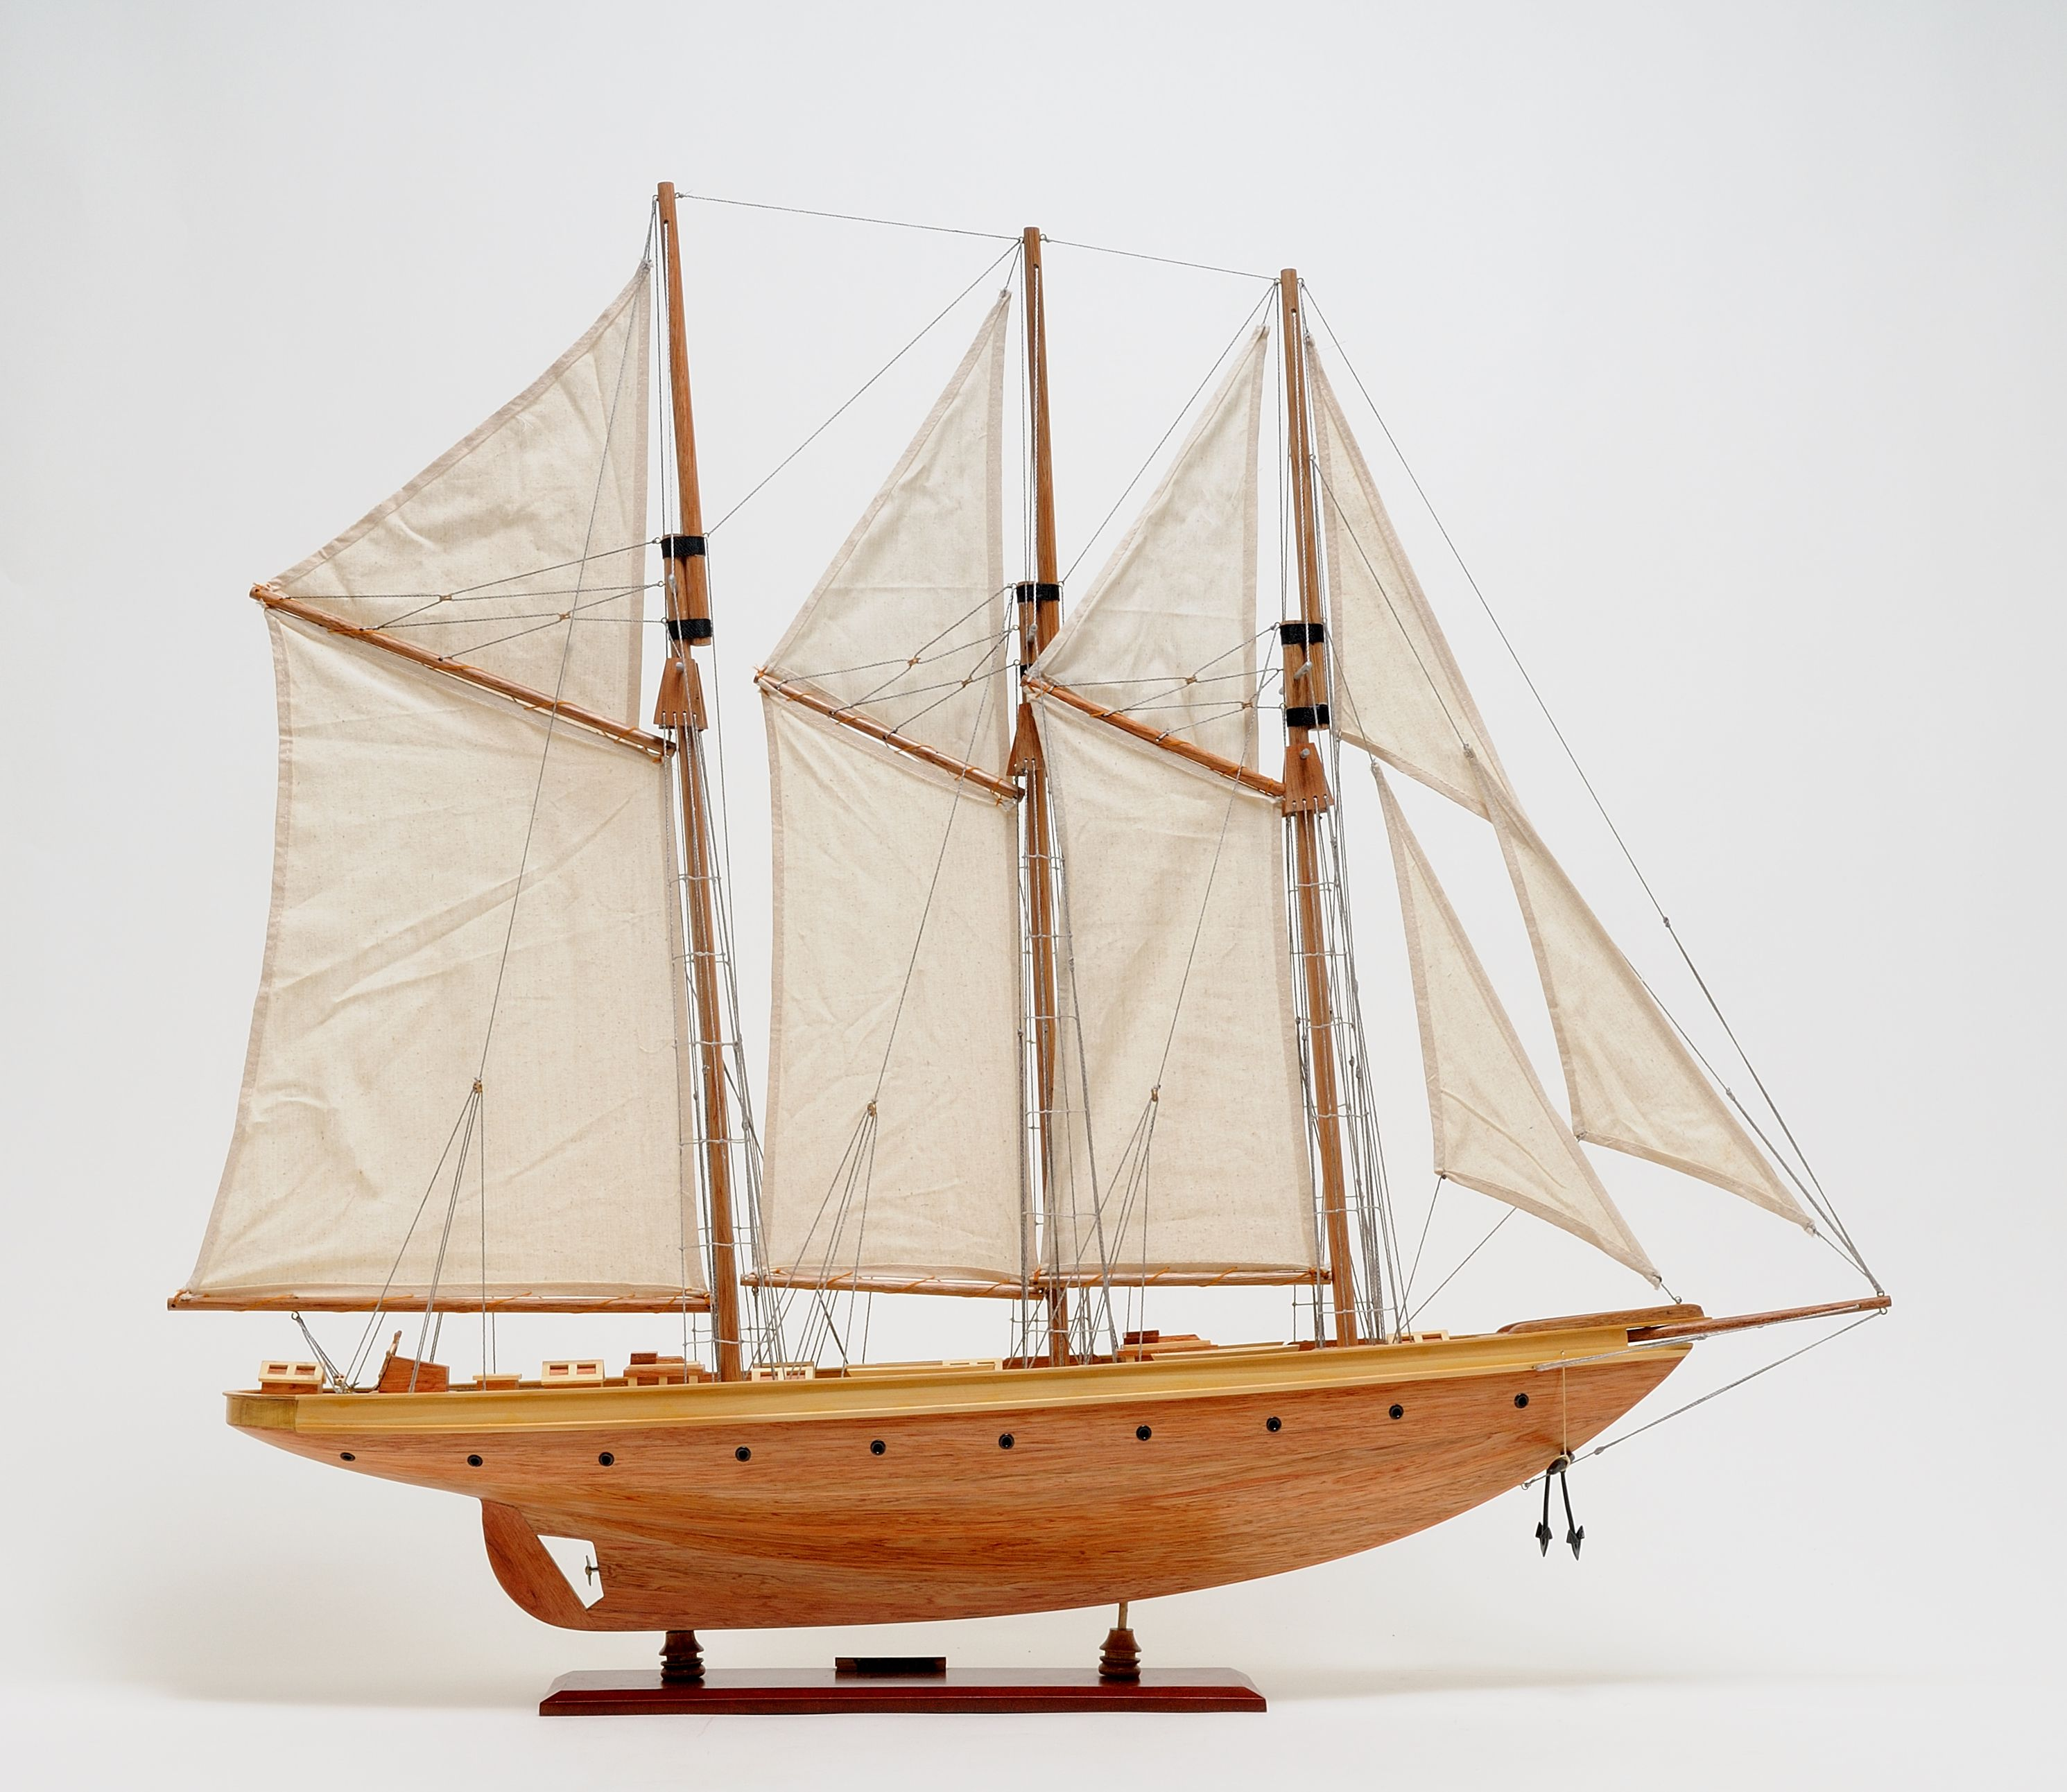 2278-13029-Atlantic-Model-Yacht